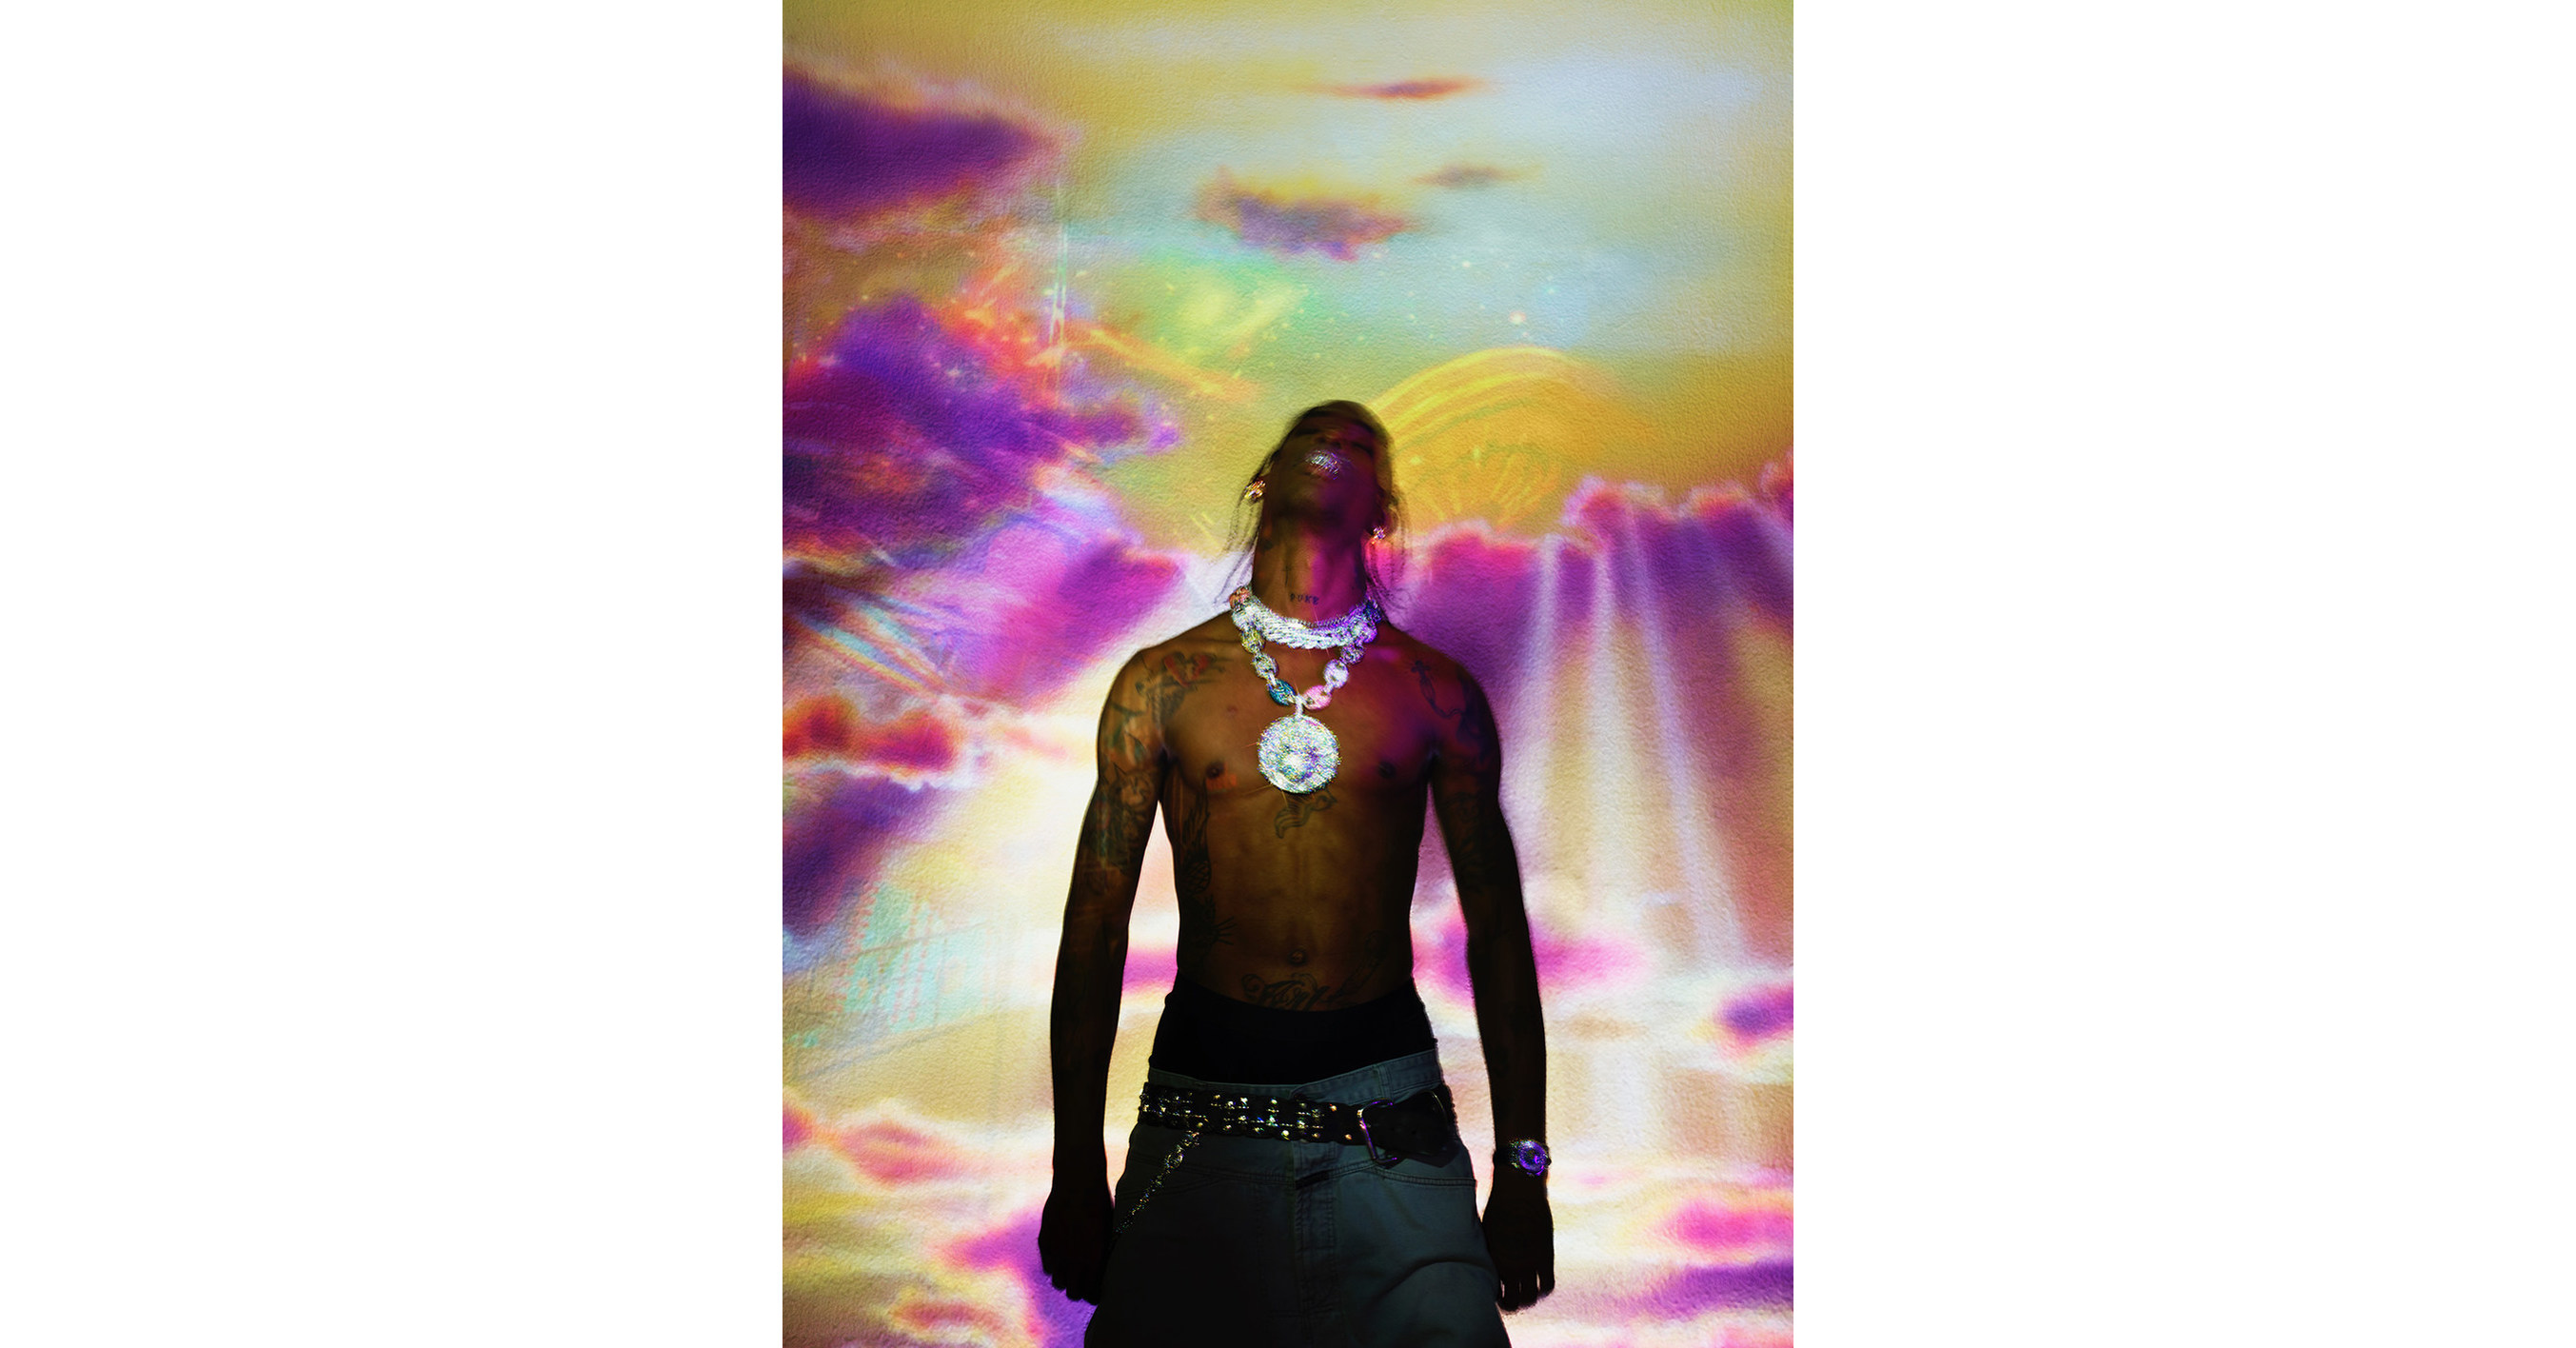 e762fccc5bac Hip Hop Superstar Travis Scott to Headline Friday Night Yasalam After-Race  Concert at 2019 Abu Dhabi Grand Prix